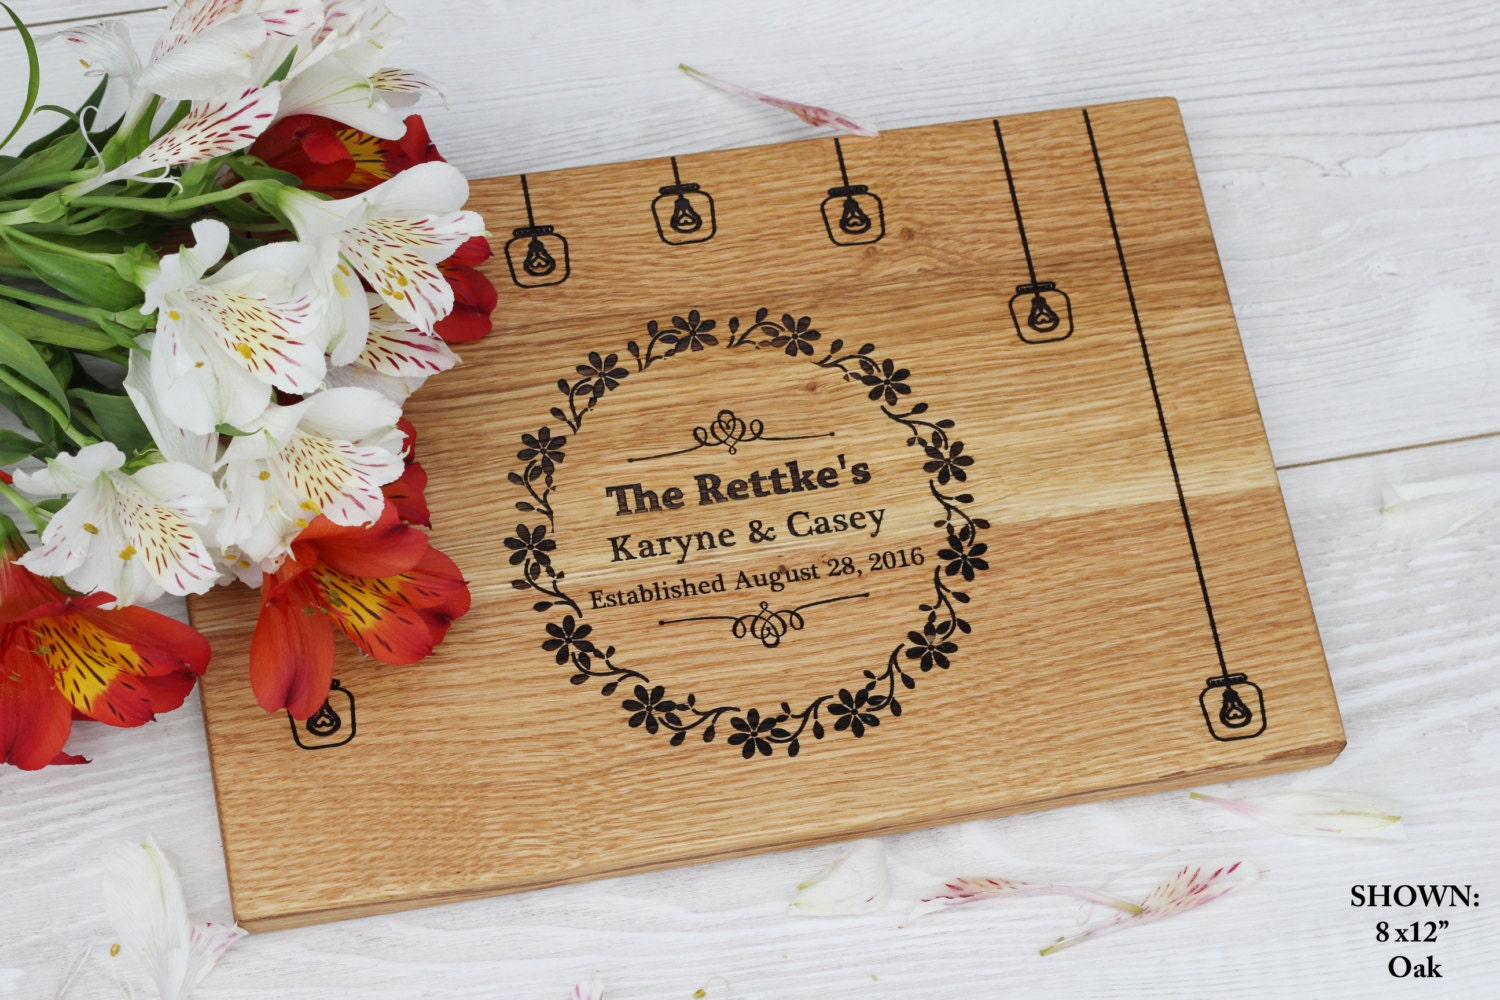 Unique Gifts Wedding: Wedding Gift Personalized Cutting Board Rustic Wedding